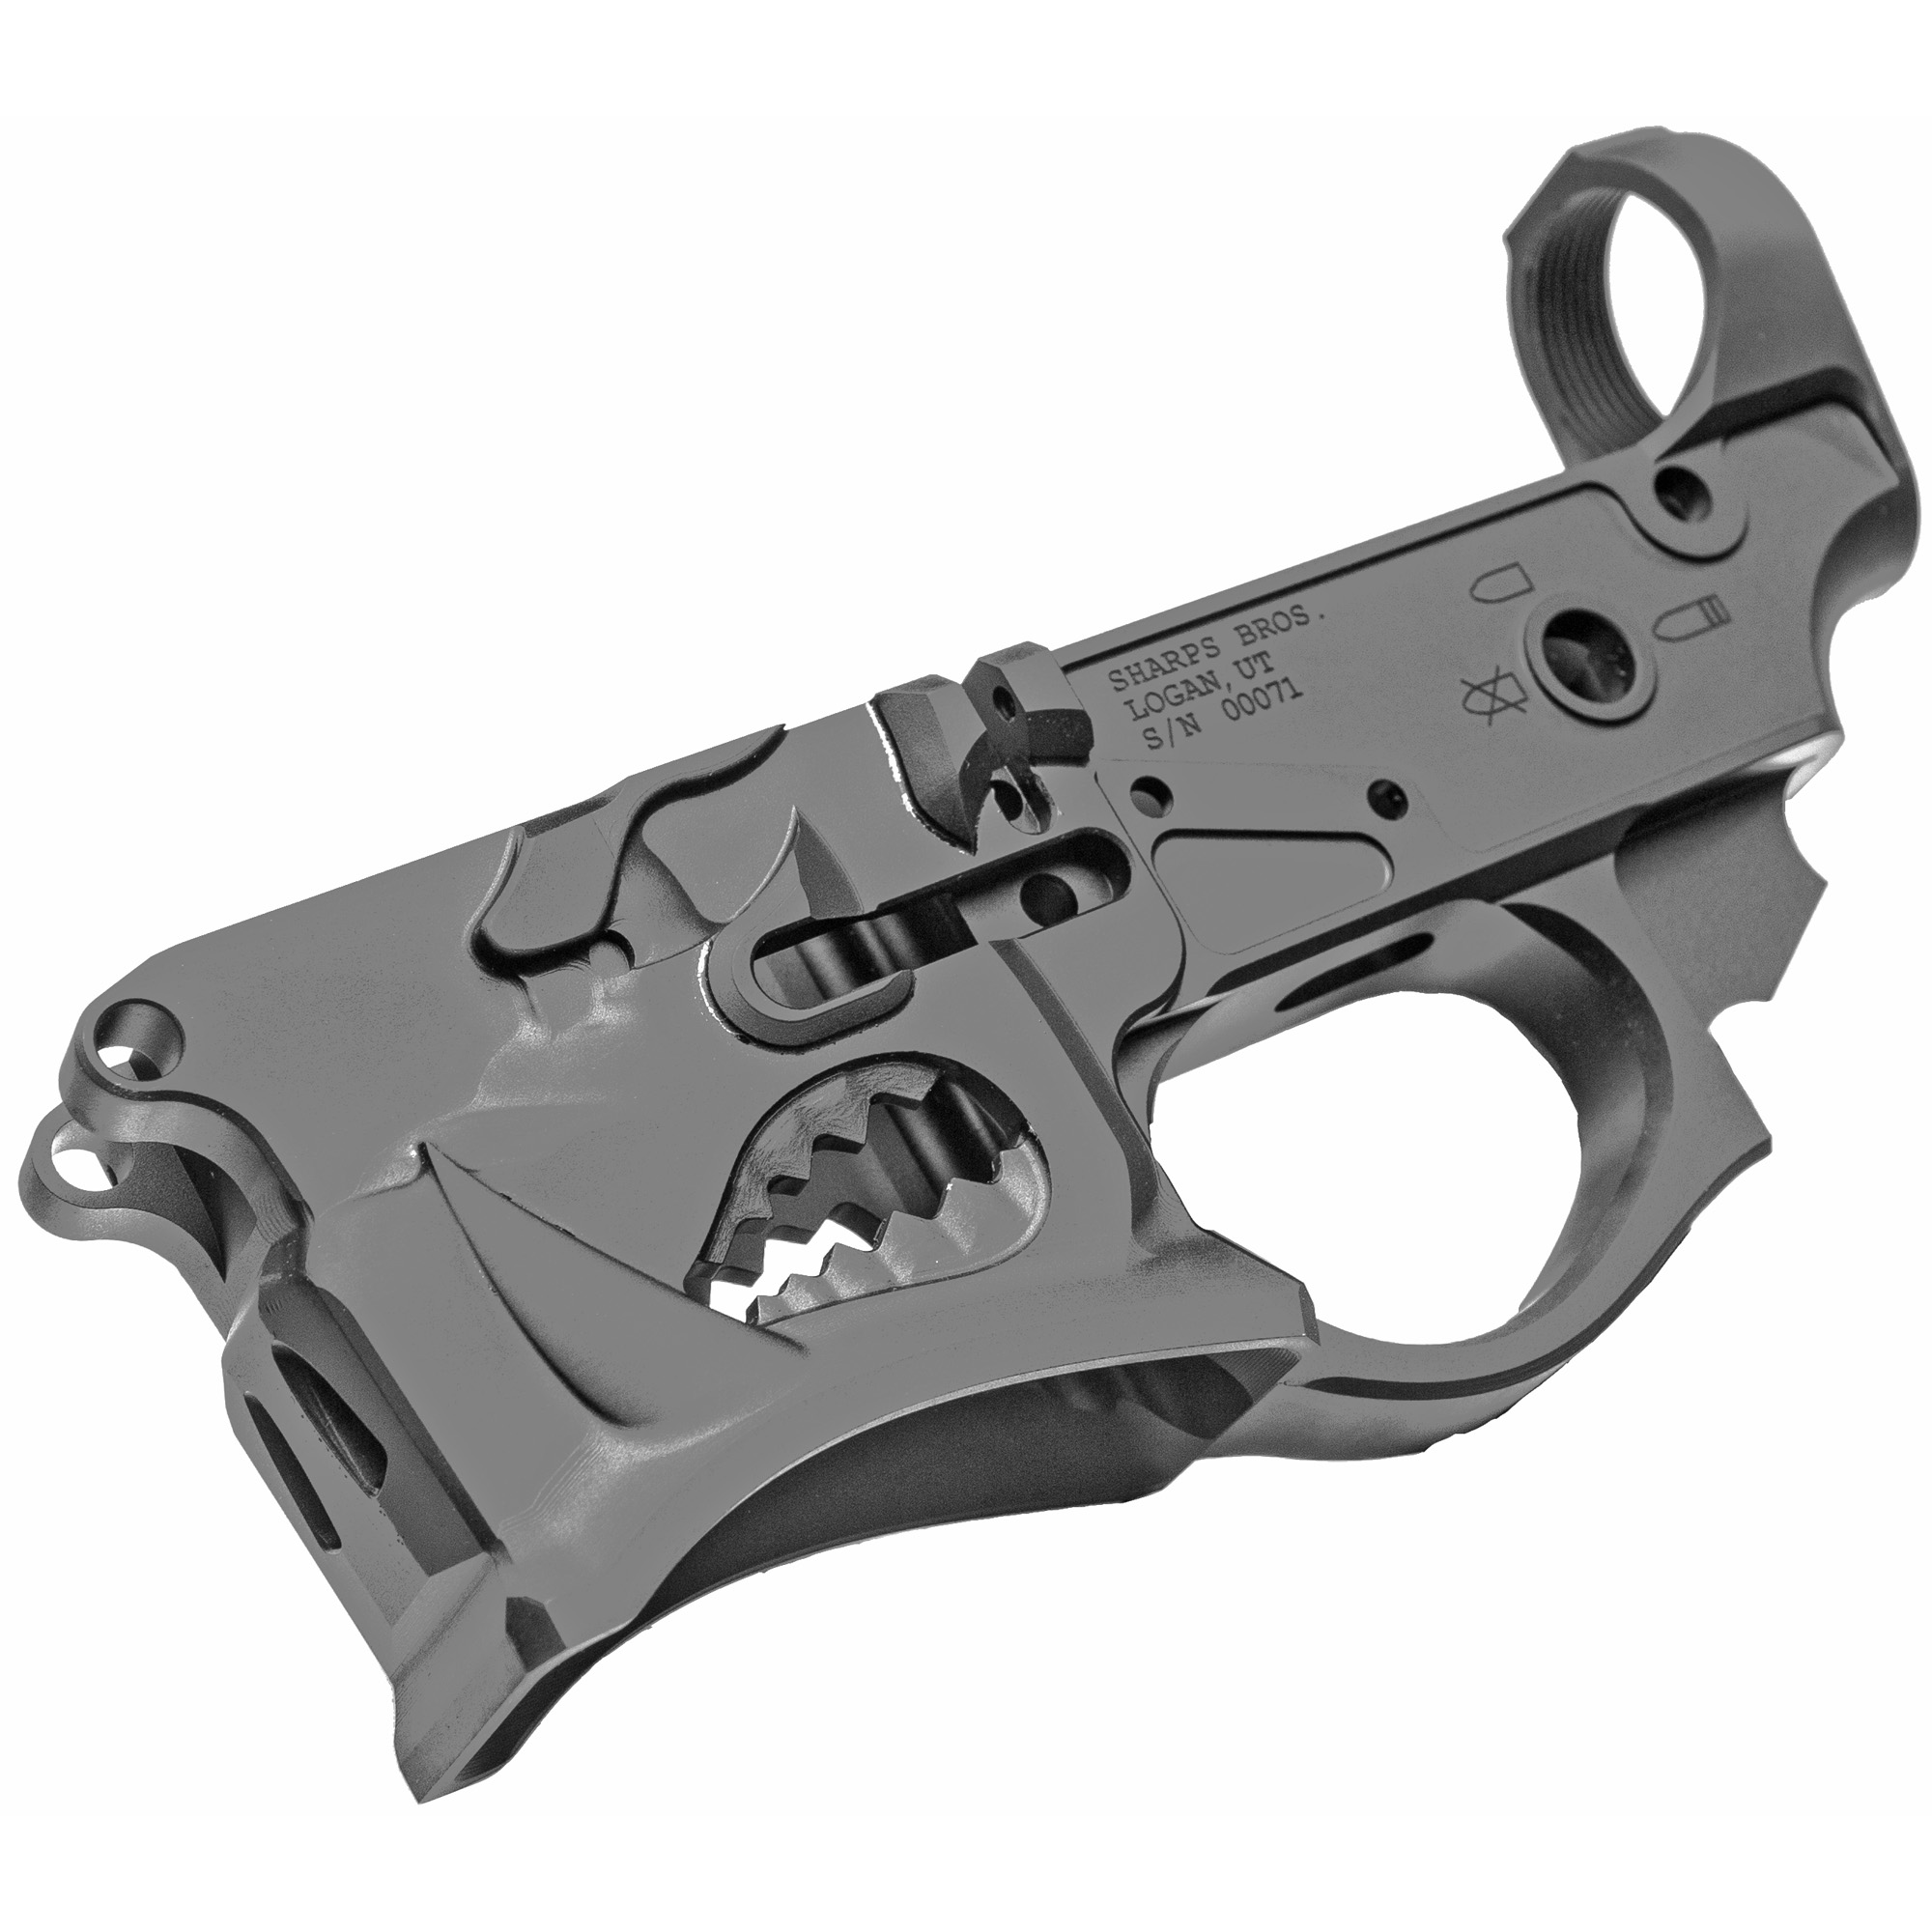 """The Warthog Gen2 features now include a threaded bolt catch pin"""" reduced weight and improved styling - and lower costs to you. Warthog's design is inspired by the A-10 Warthog aircraft."""